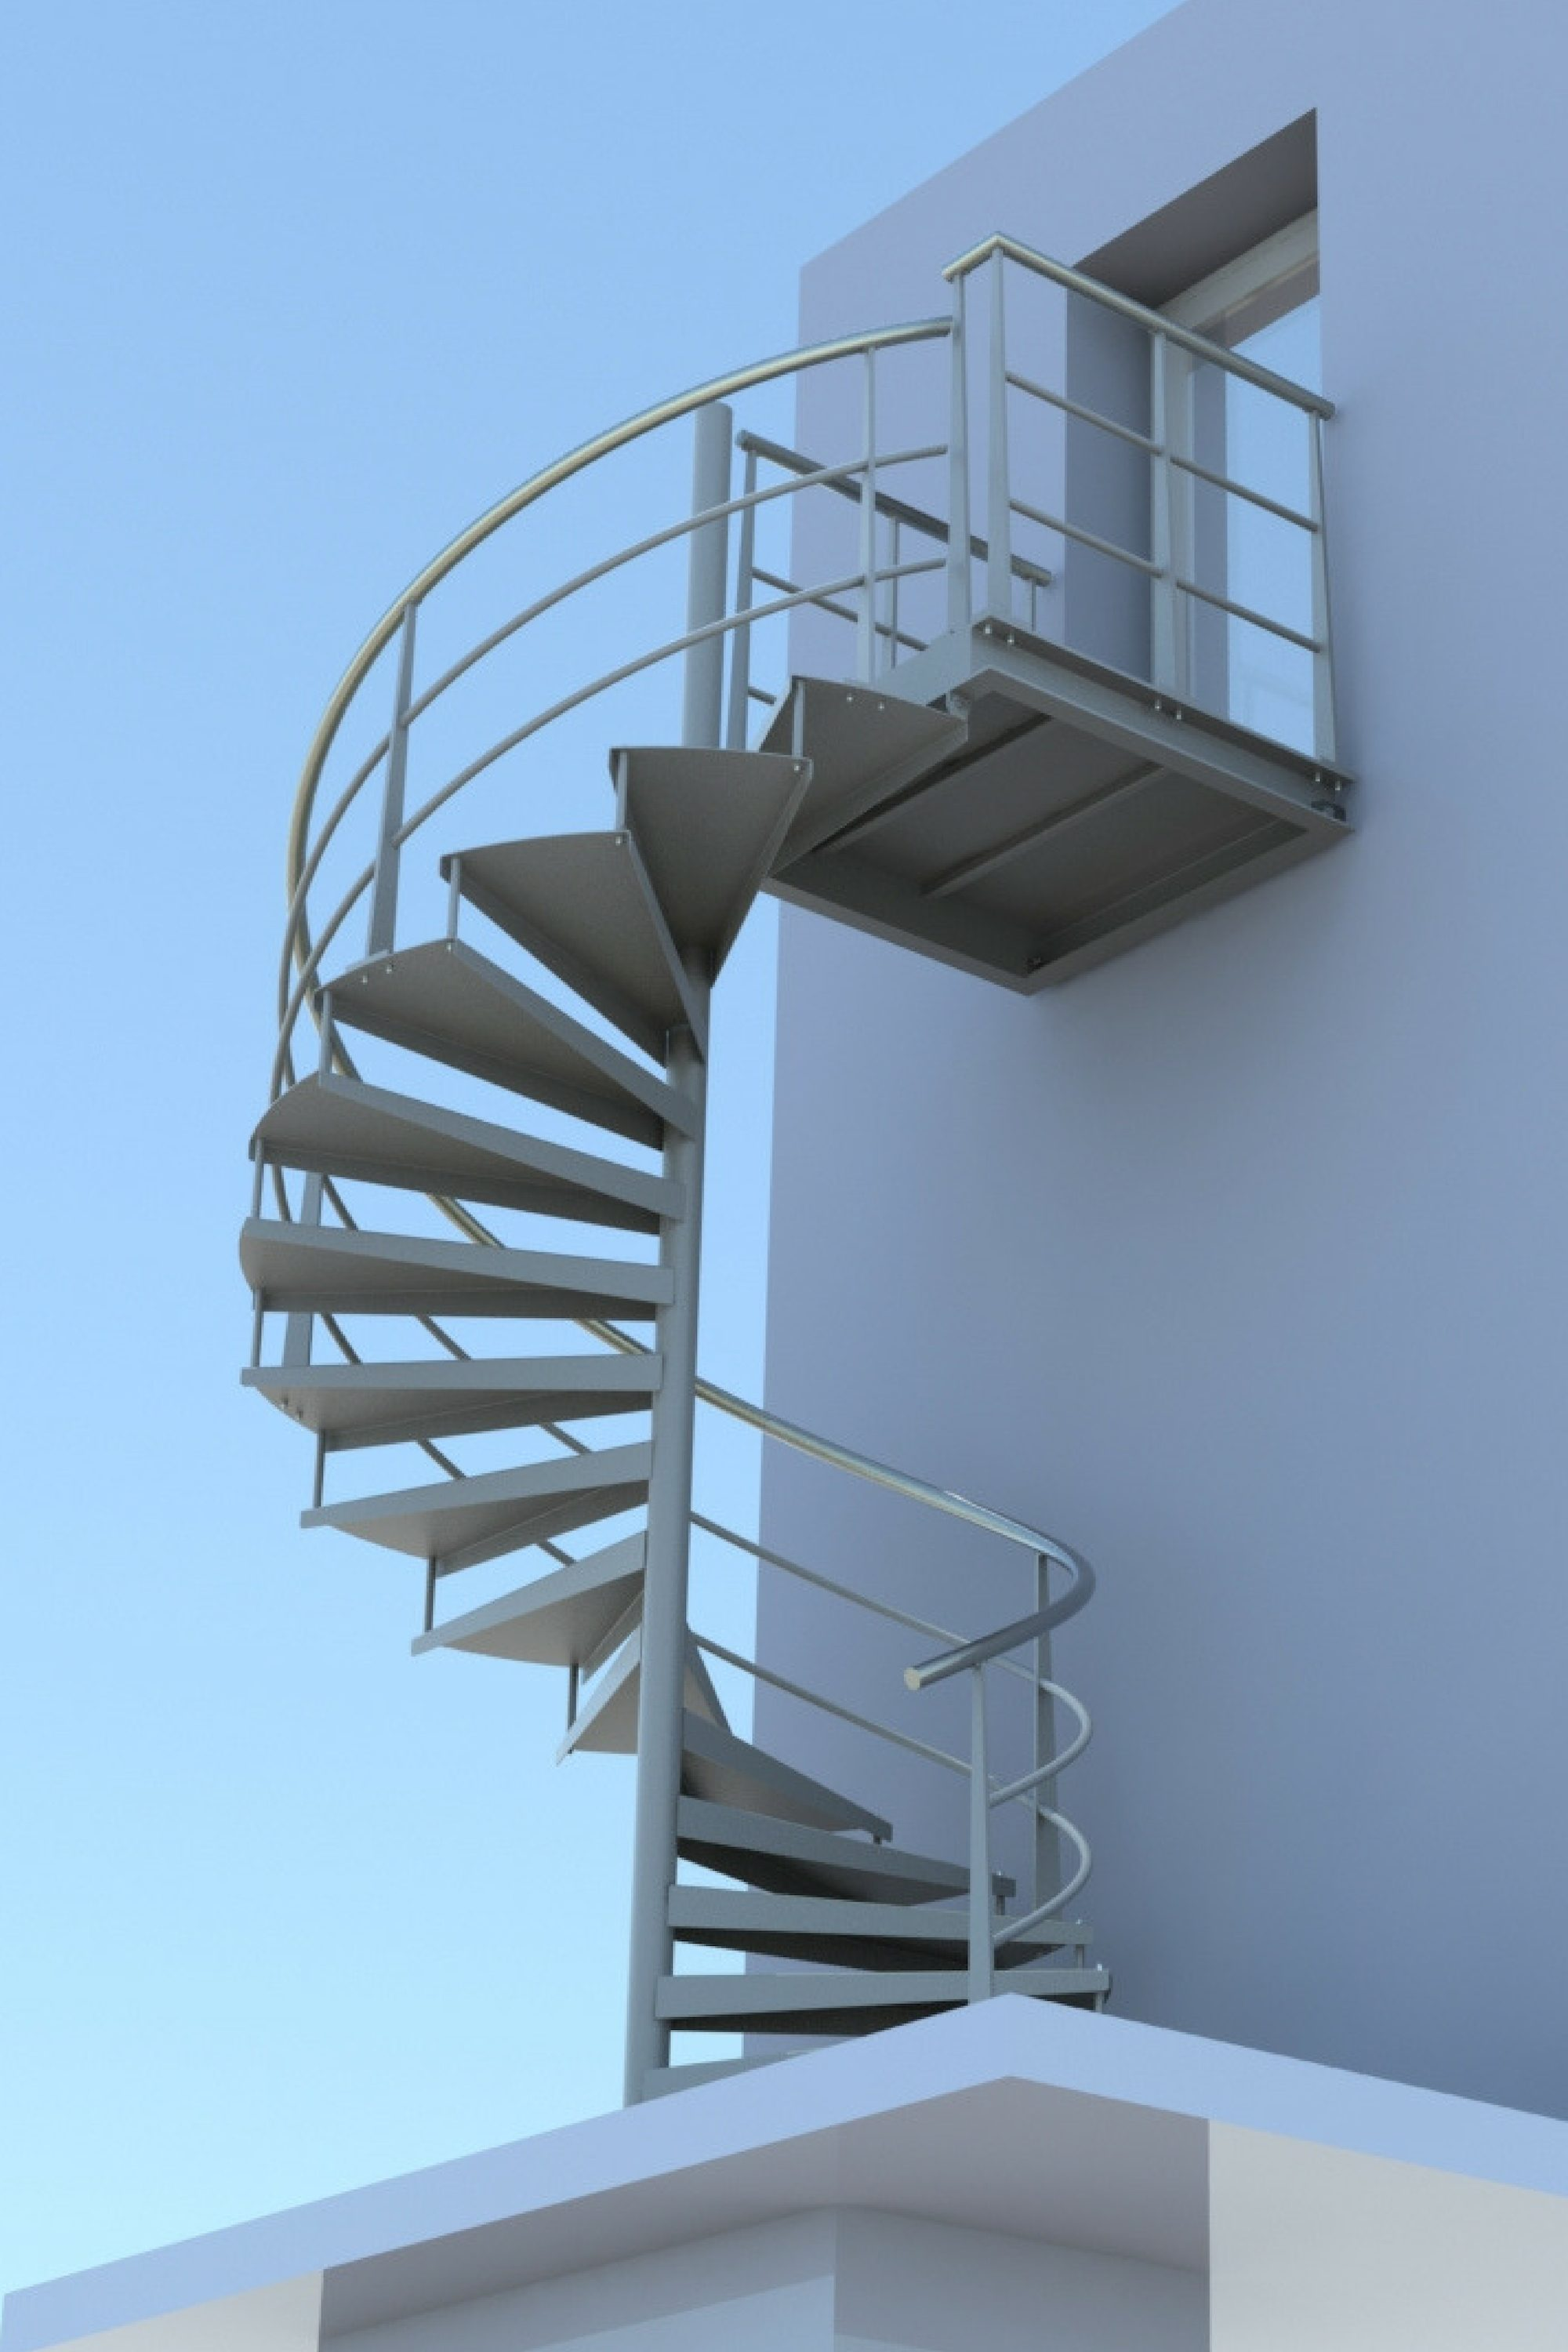 Render of spiral escape staircase